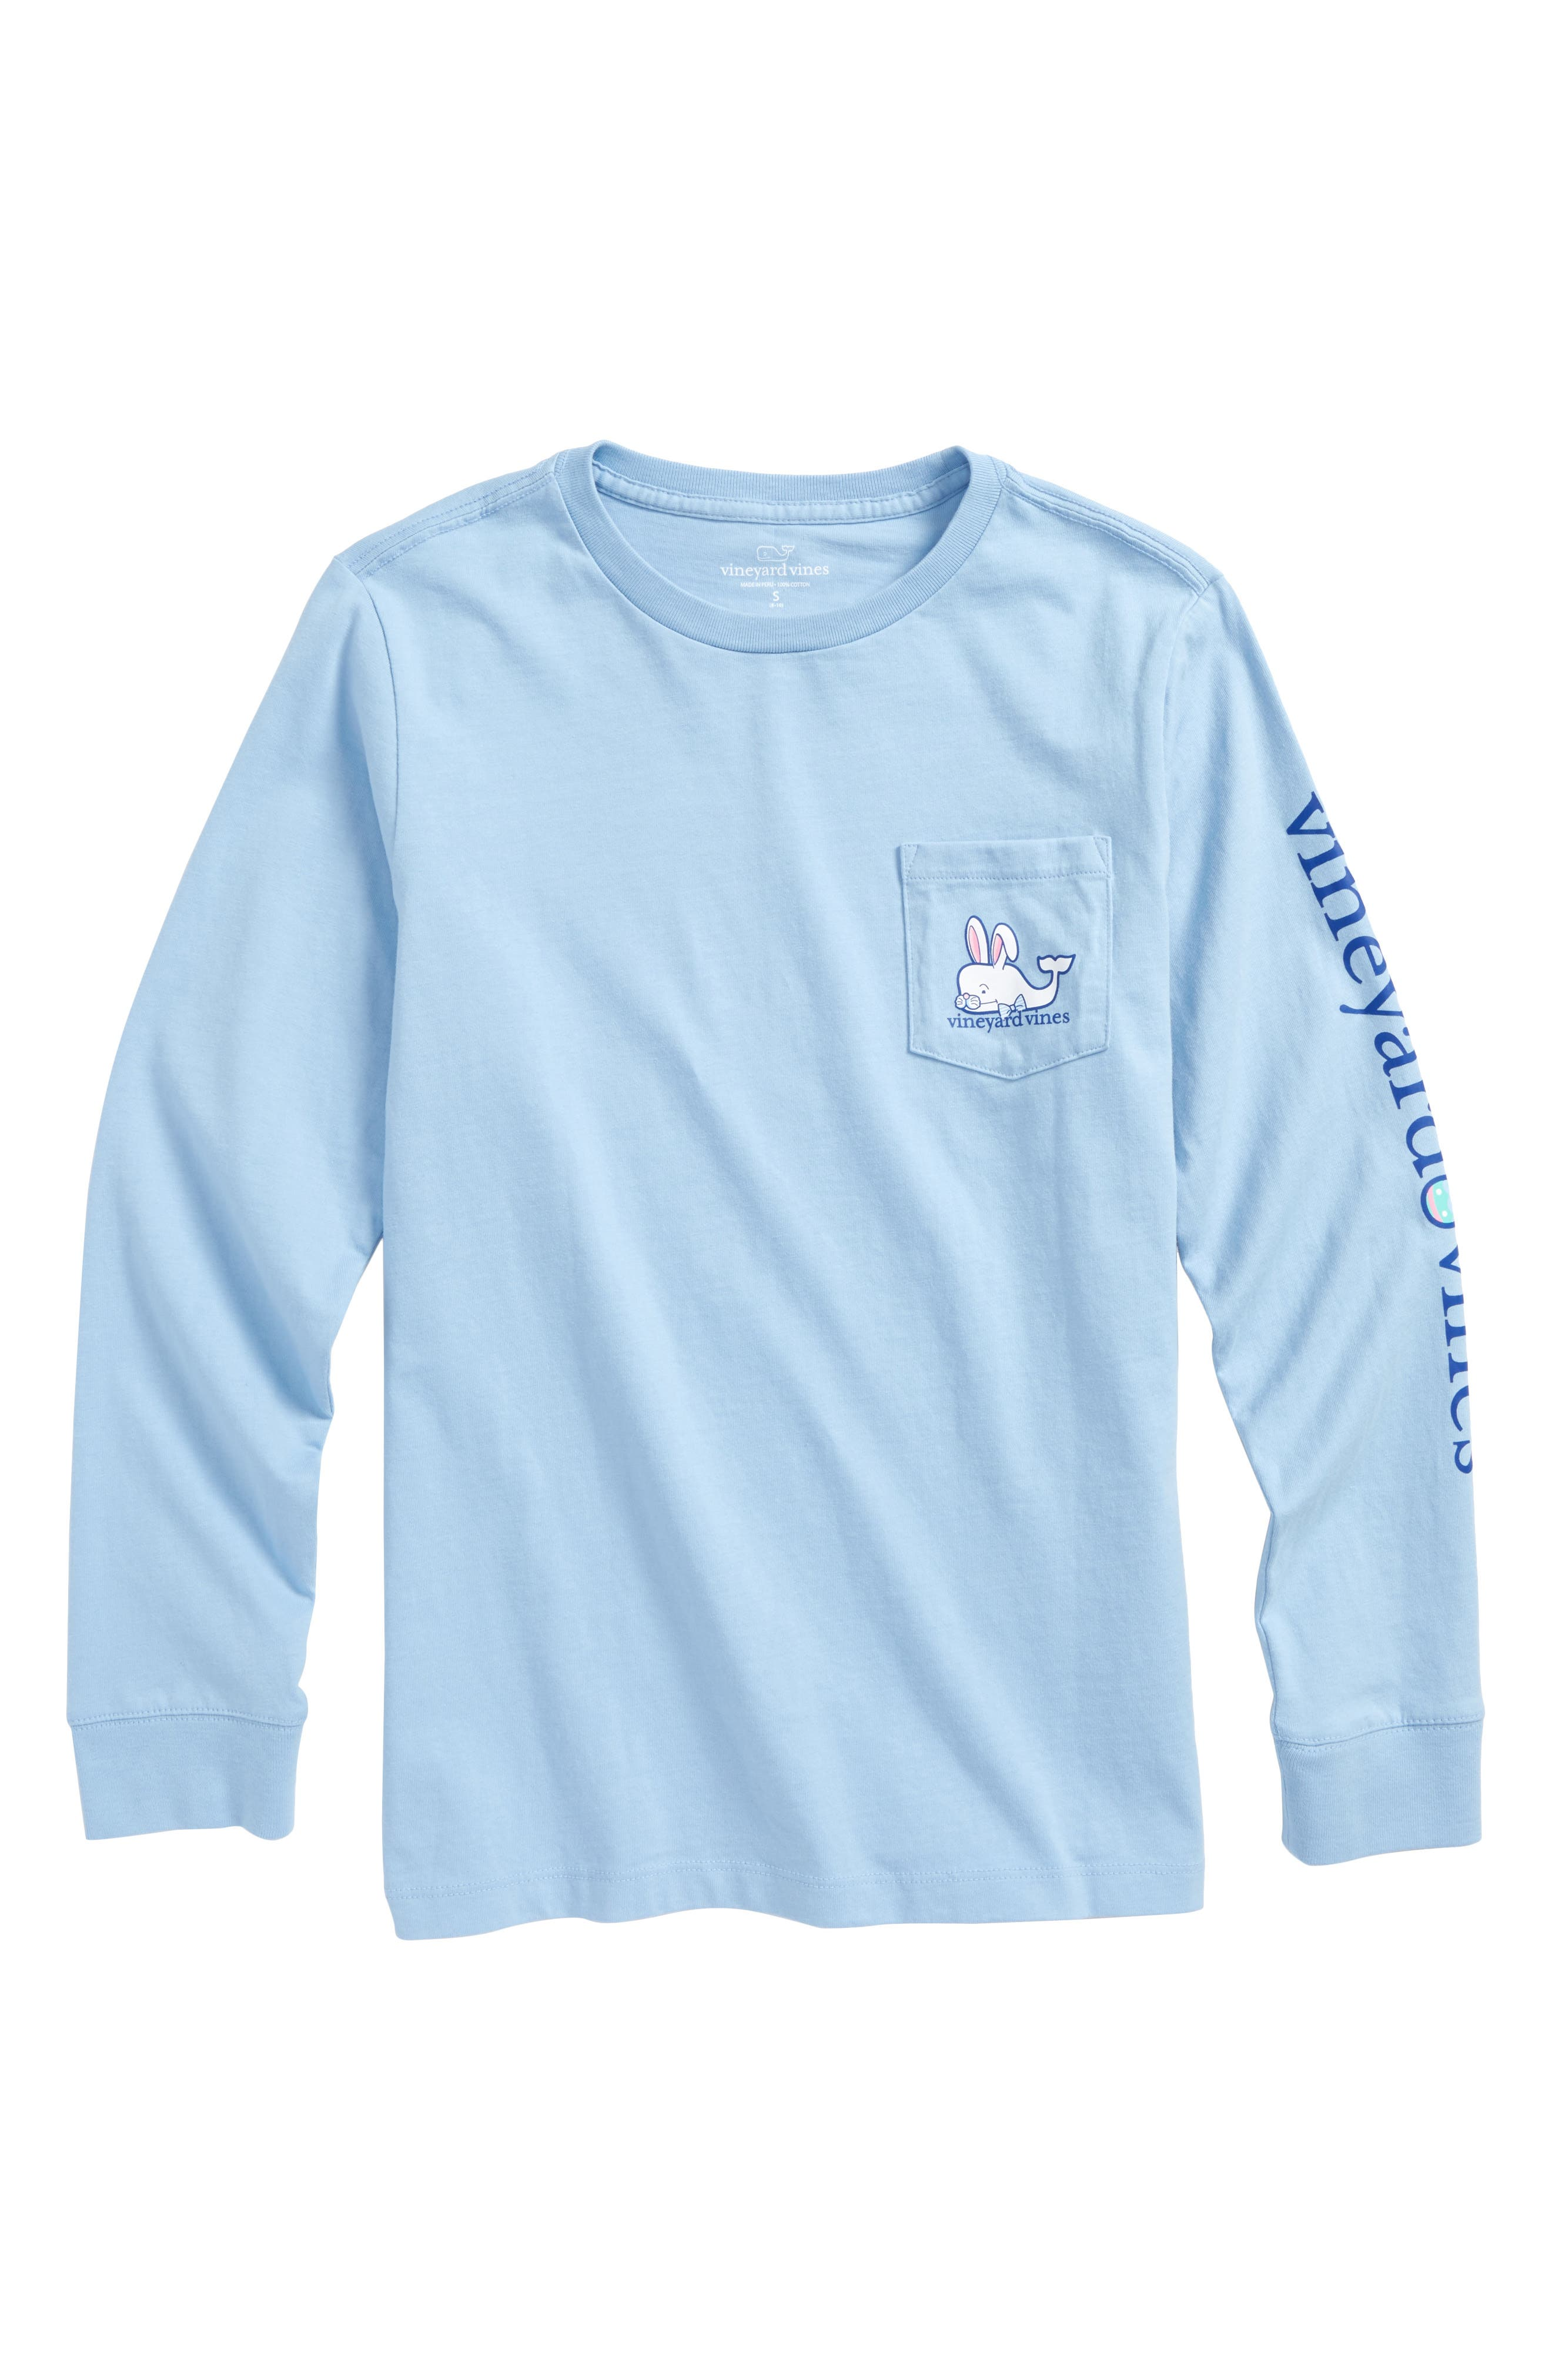 vineyard vines Easter Bunny Whale Pocket T-Shirt (Toddler Boys & Little Boys)